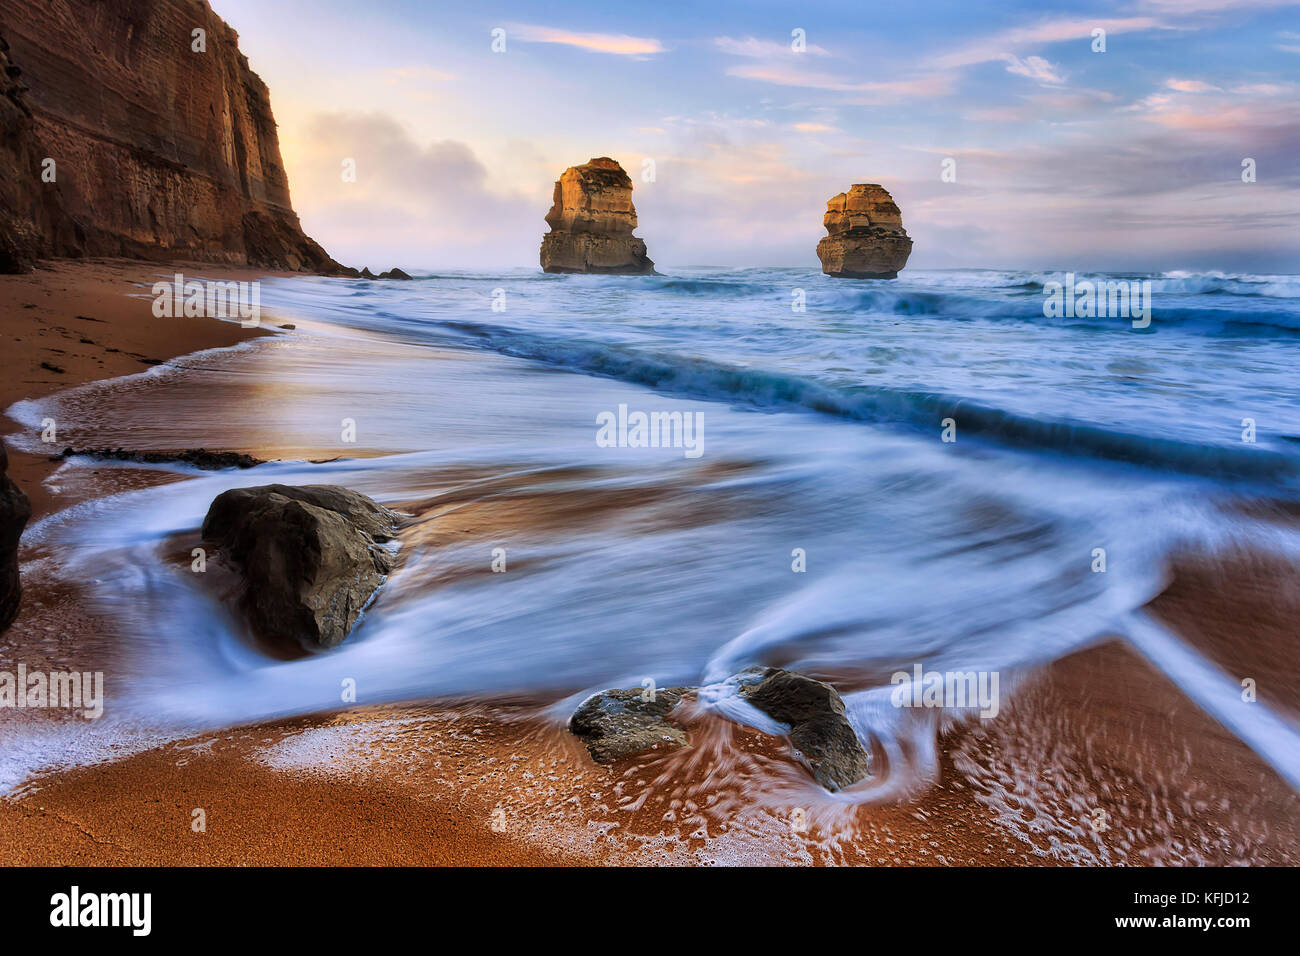 Sunrise at Gibson steps beach on Great Ocean road twelve apostles marine park with view of two standing rocks disconnected - Stock Image